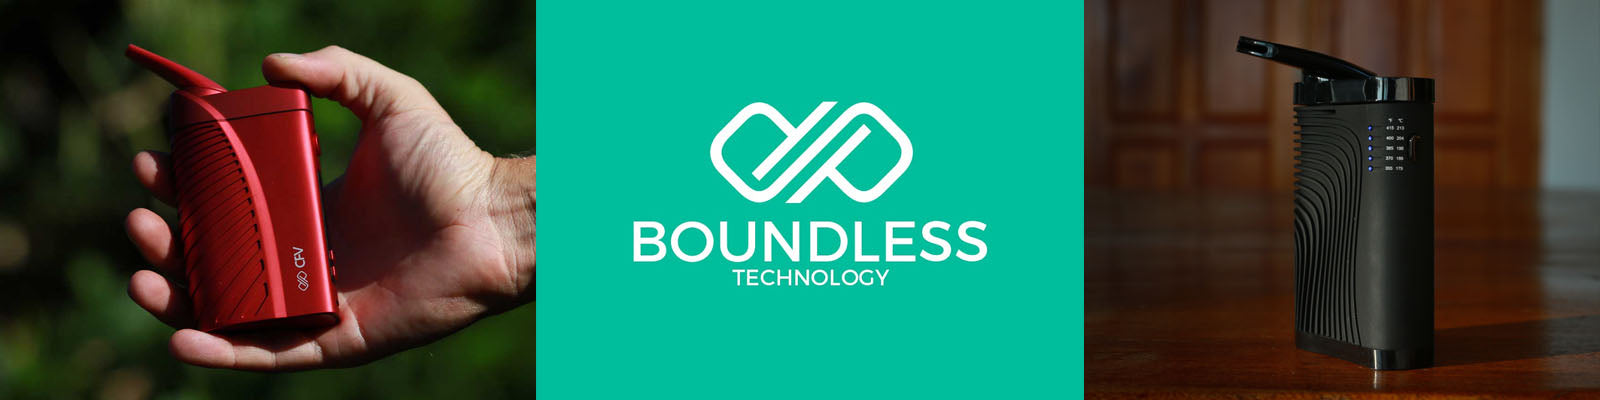 Boundless Vaporizers - Free Shipping & Best Price - Authorized Sellers - Canada